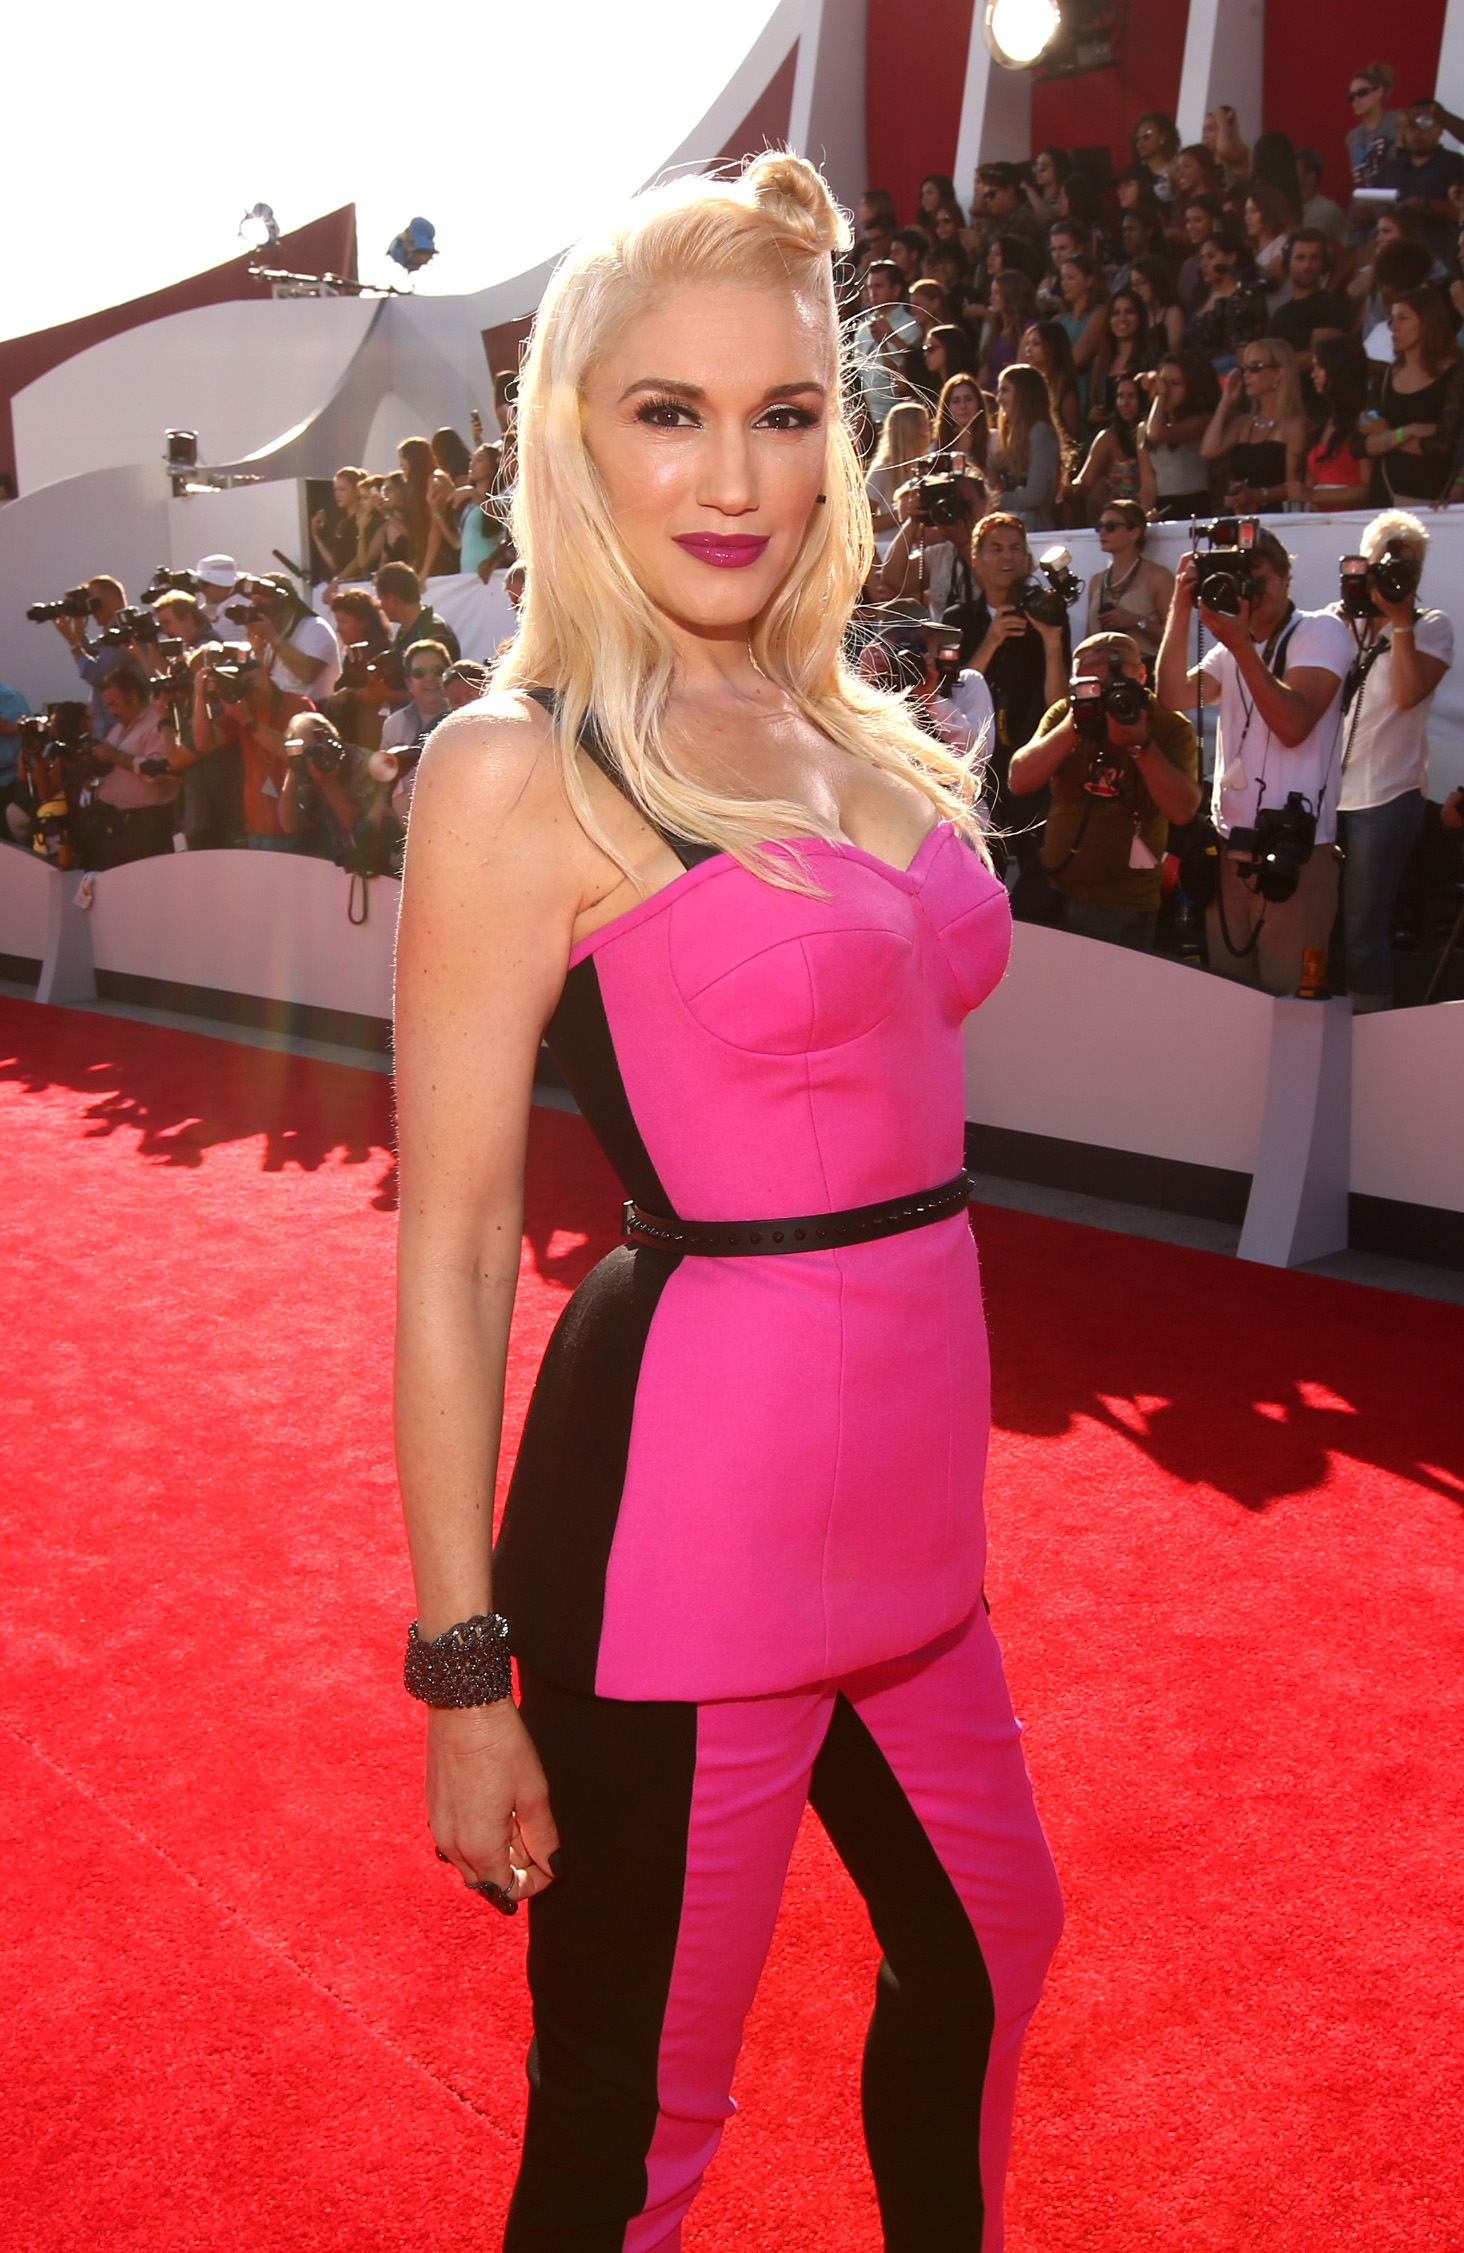 Gwen Stefani attends the 2014 MTV Video Music Awards at The Forum on August 24, 2014 in Inglewood, California.